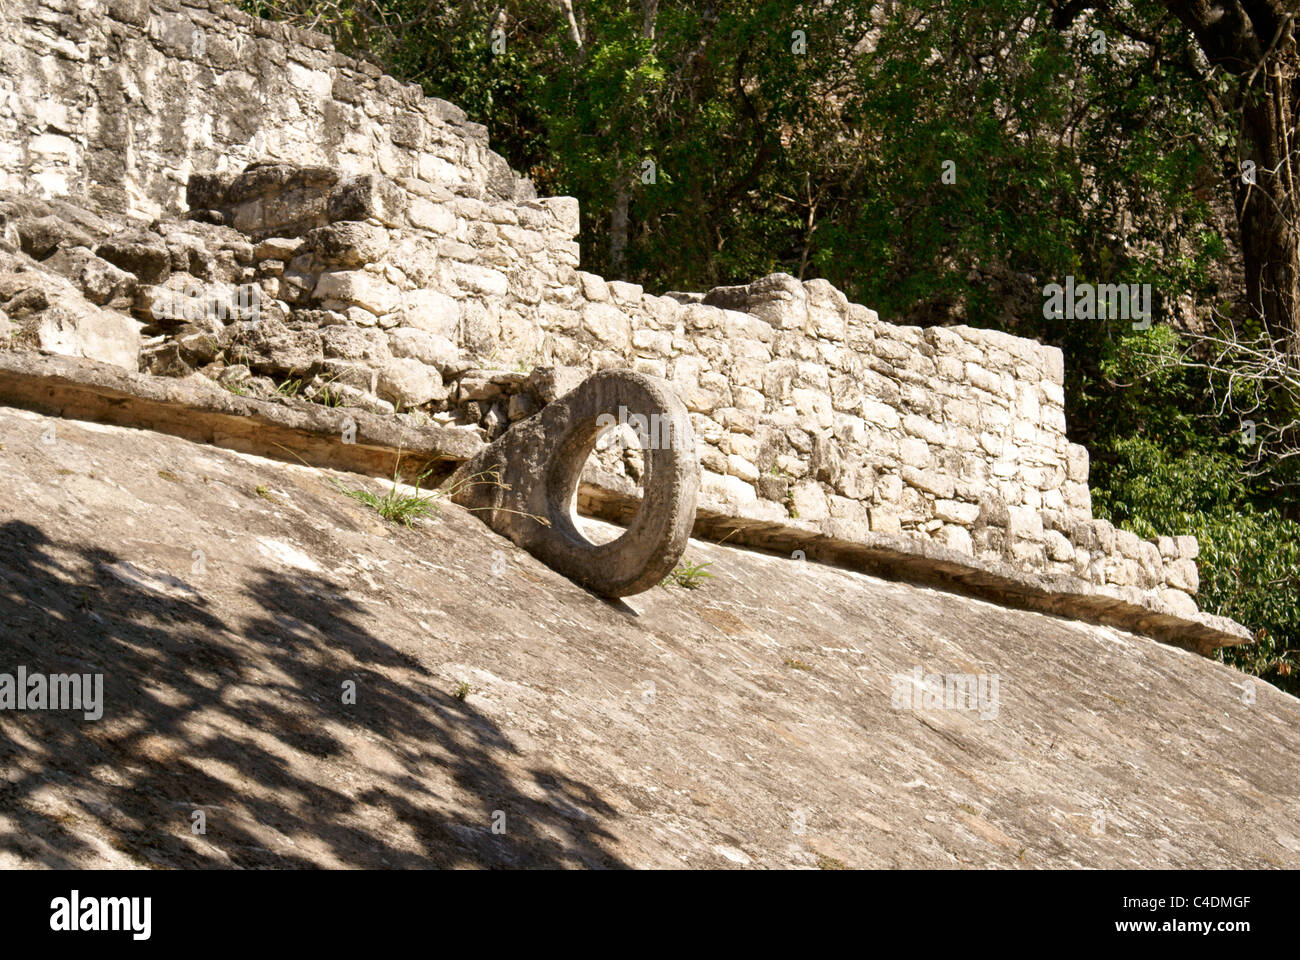 Mayan ball court ring in the Coba Group at the ruins of Coba, Quintana Roo, Mexico - Stock Image